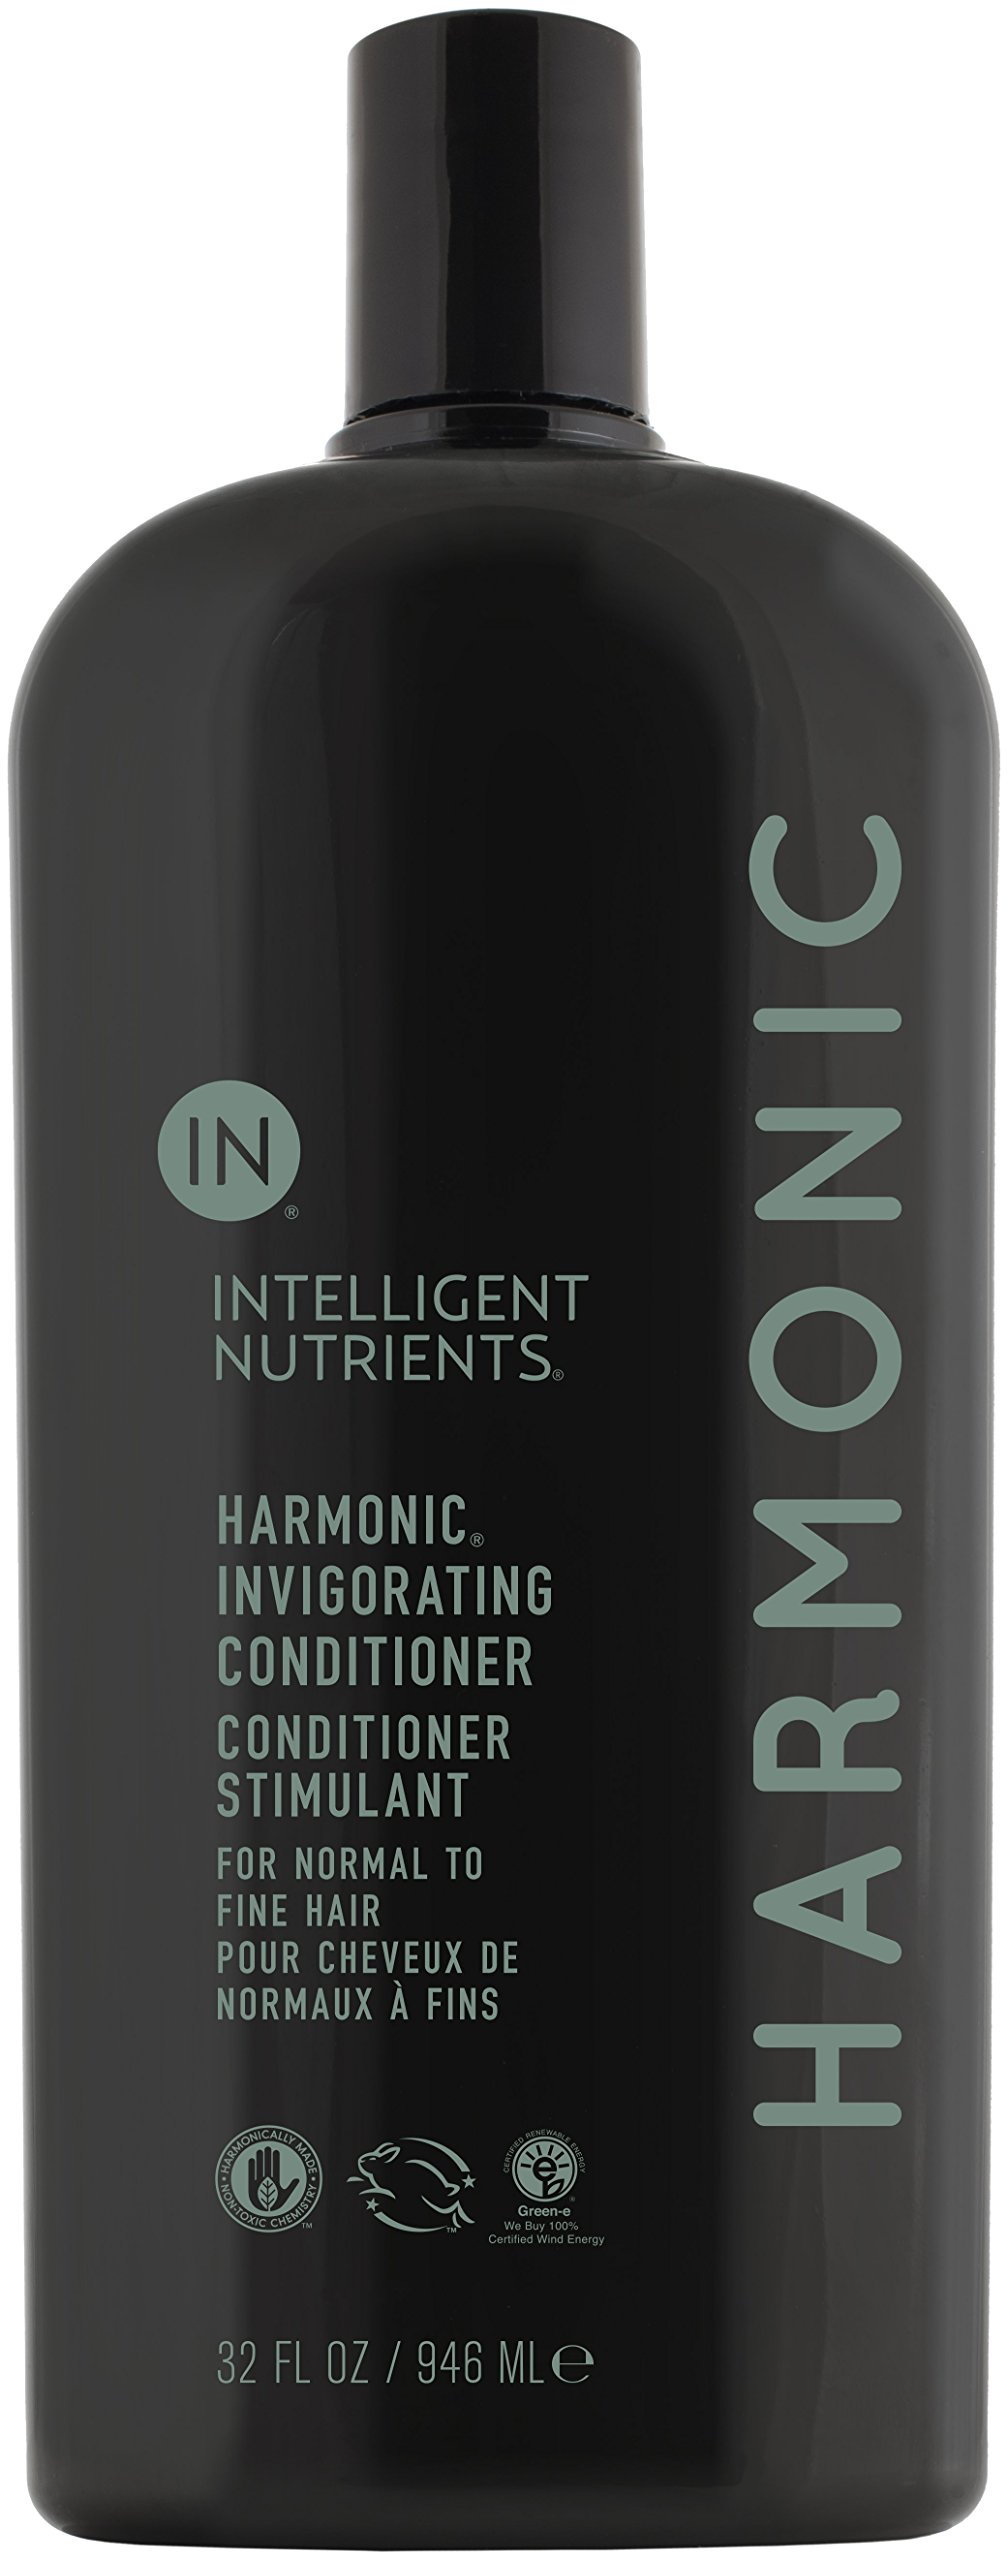 Intelligent Nutrients Environmental Size Harmonic Invigorating Conditioner - Hydrating, Non-Toxic Conditioner with Peppermint & Spearmint Oil - New Look, Same Tingle (32 oz) by Intelligent Nutrients